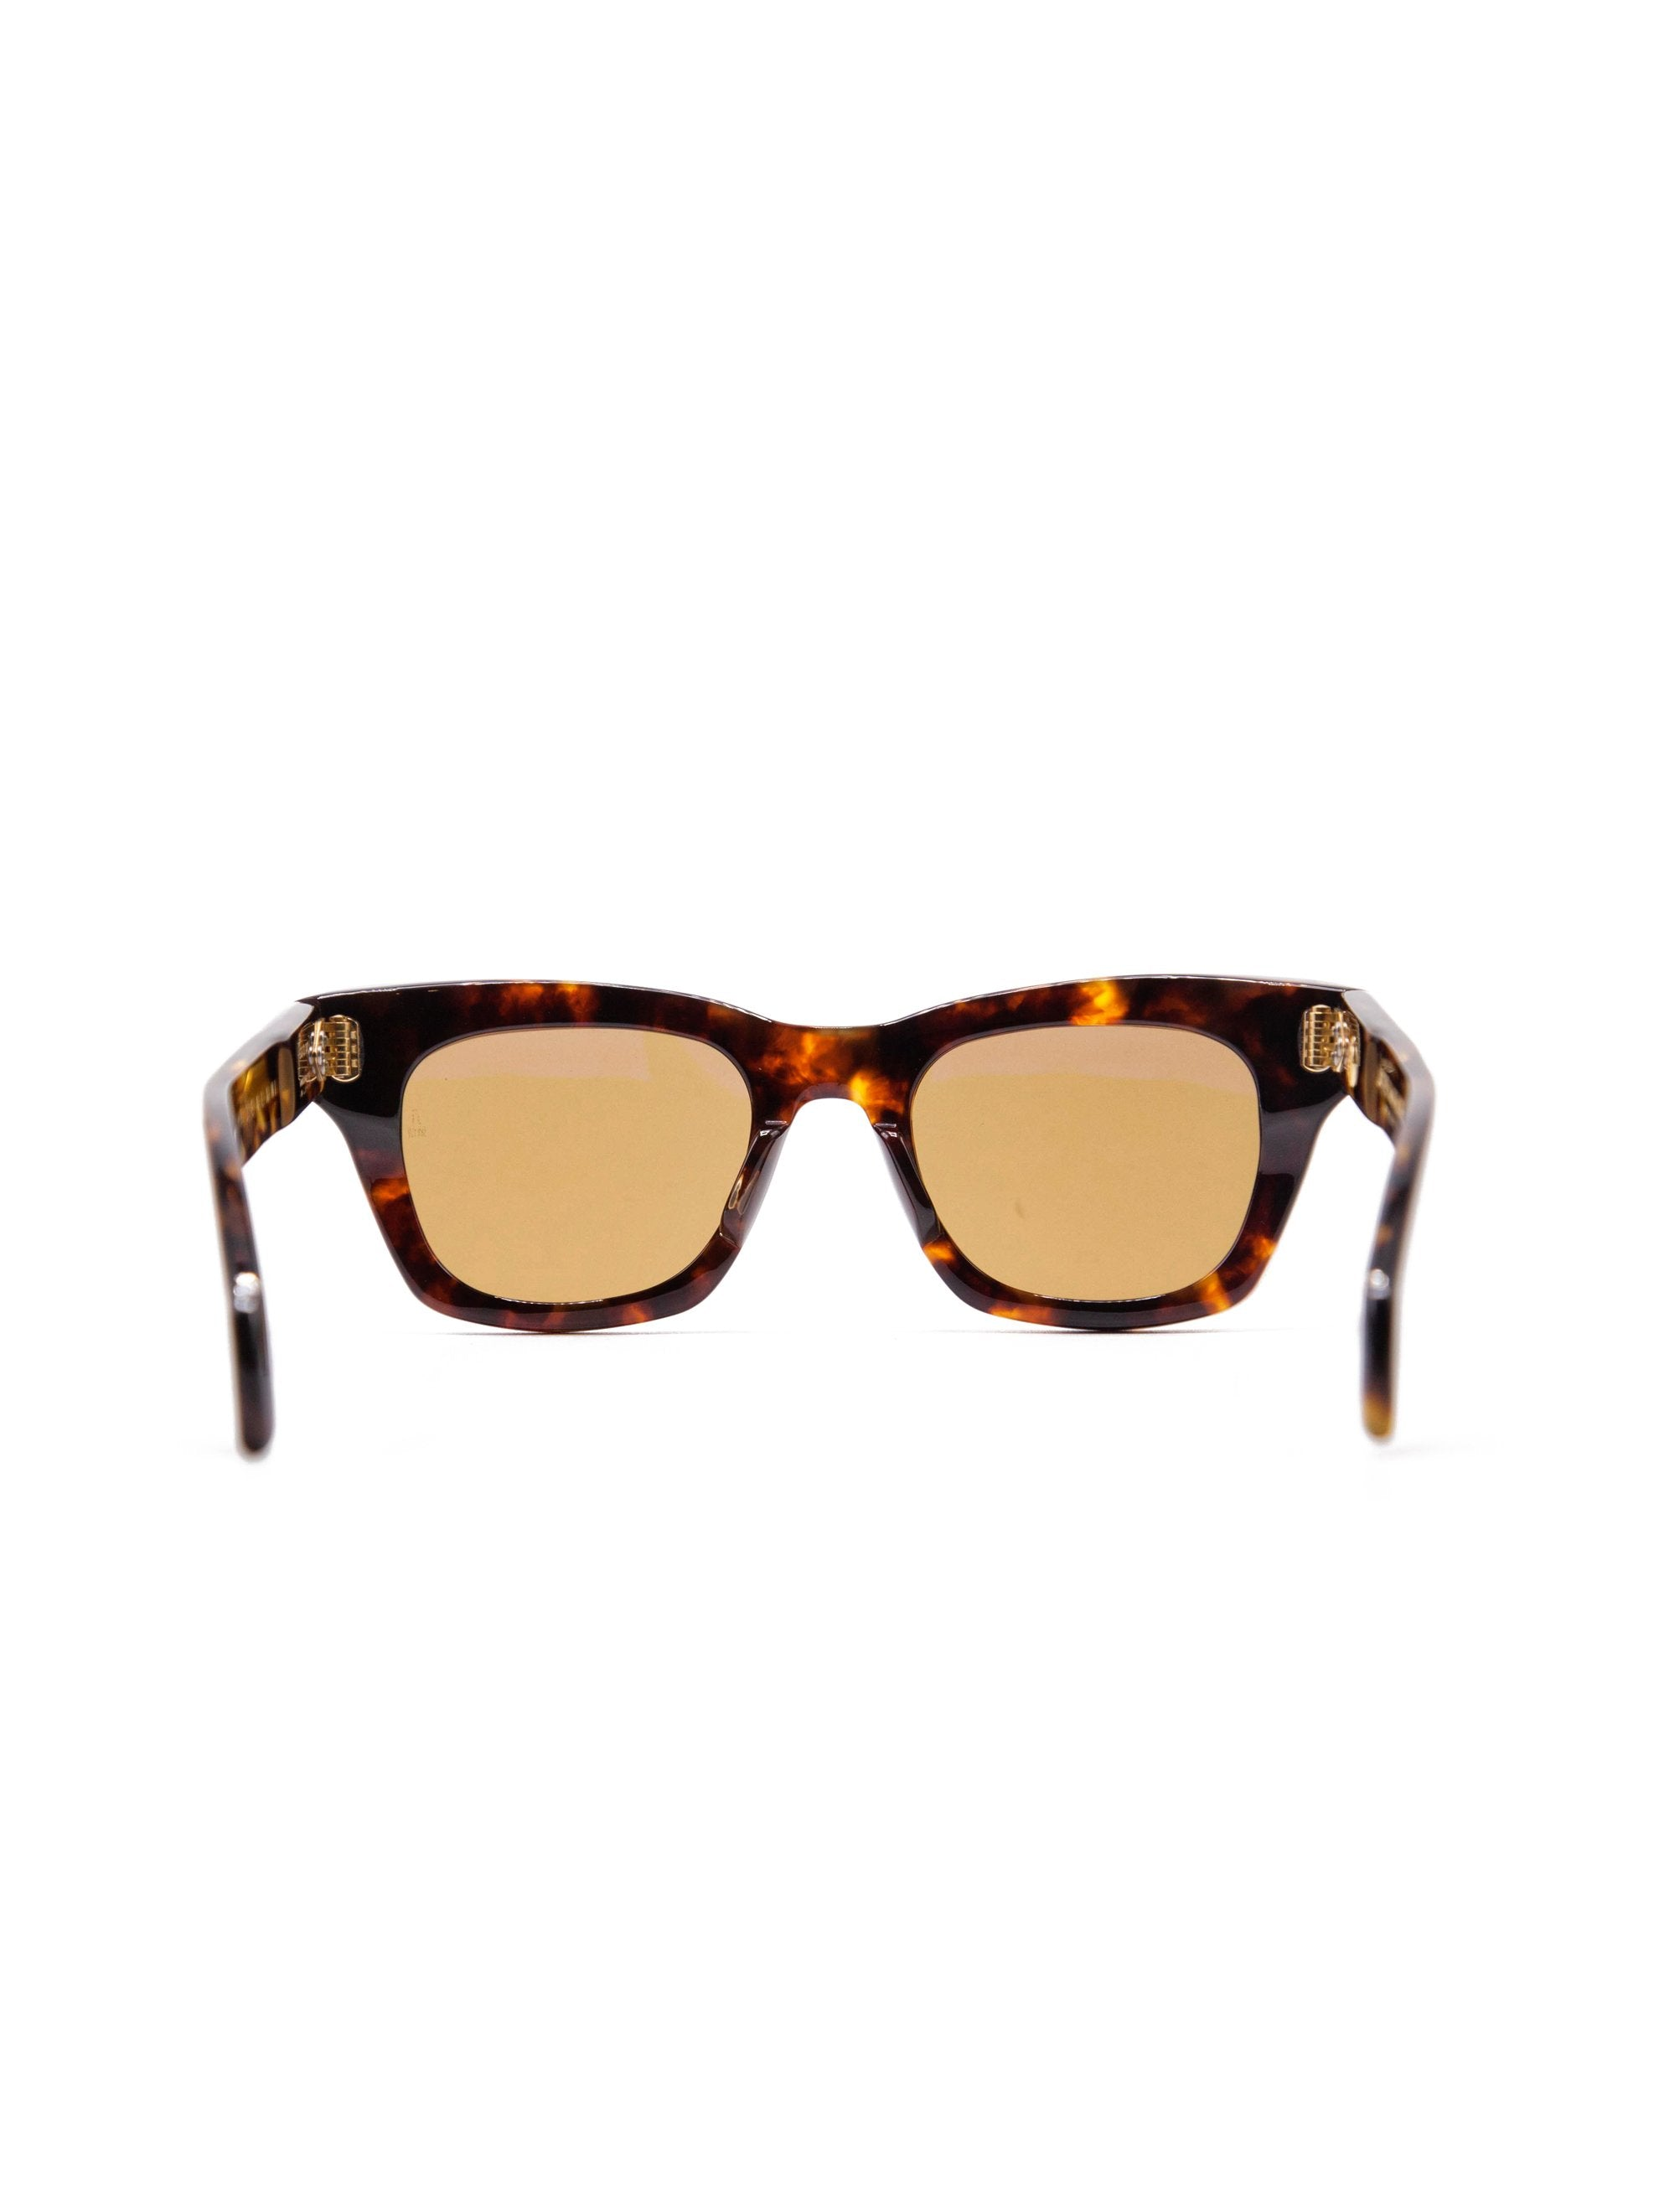 Havana (Brown Glass/10k Gold) Dealan 2